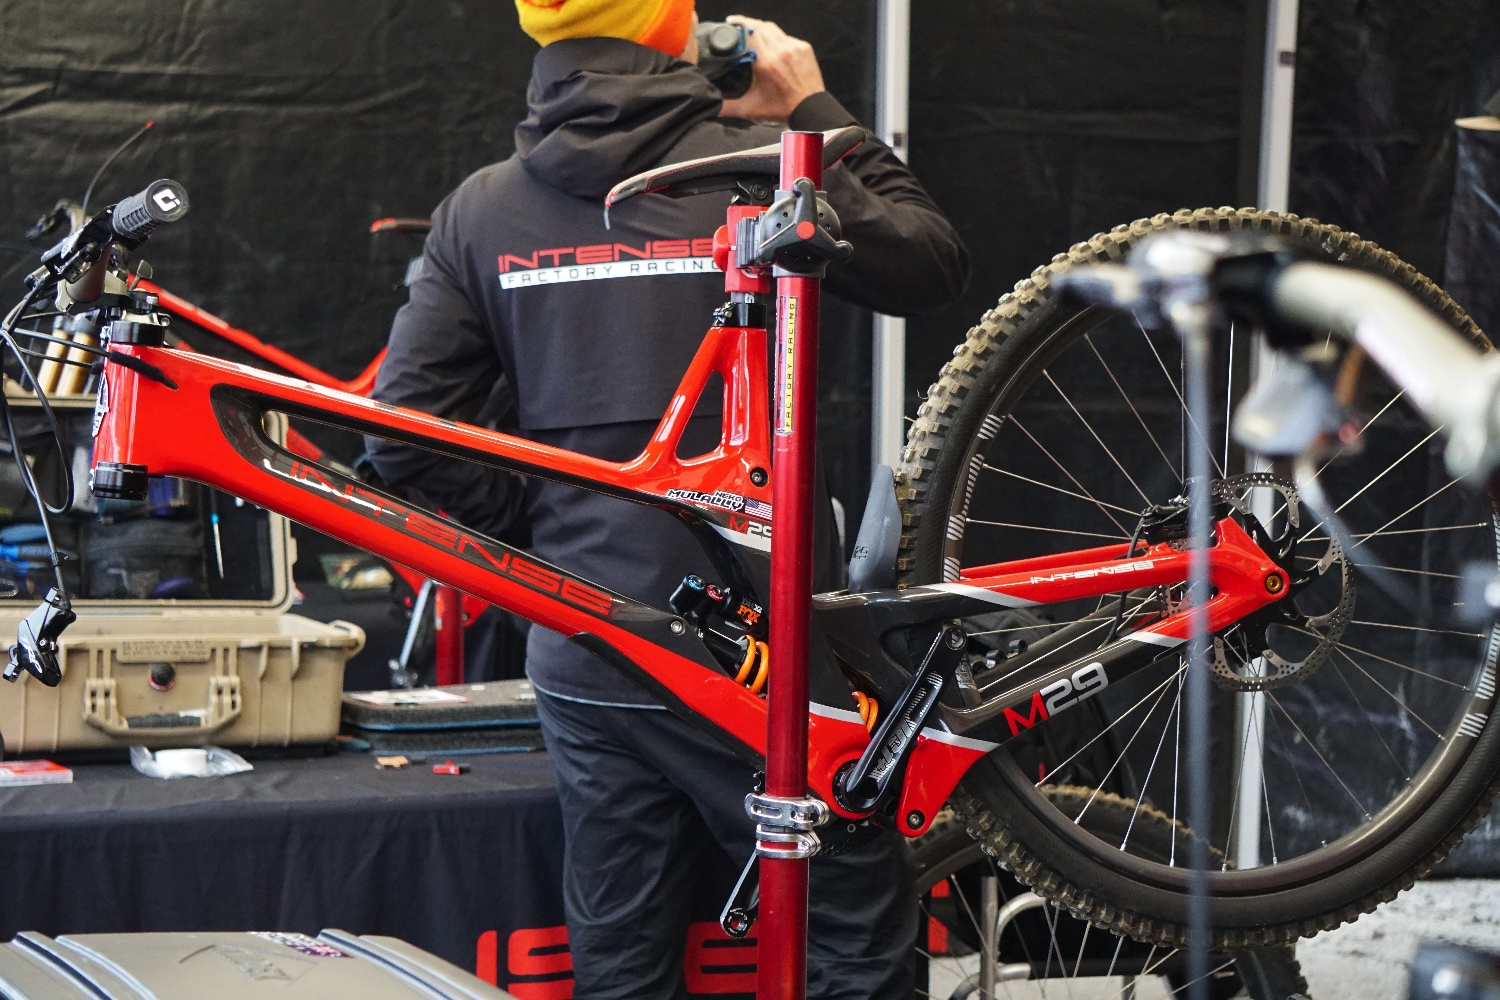 Day 1 2019 Fort William DH World Cup: Spied in the pits